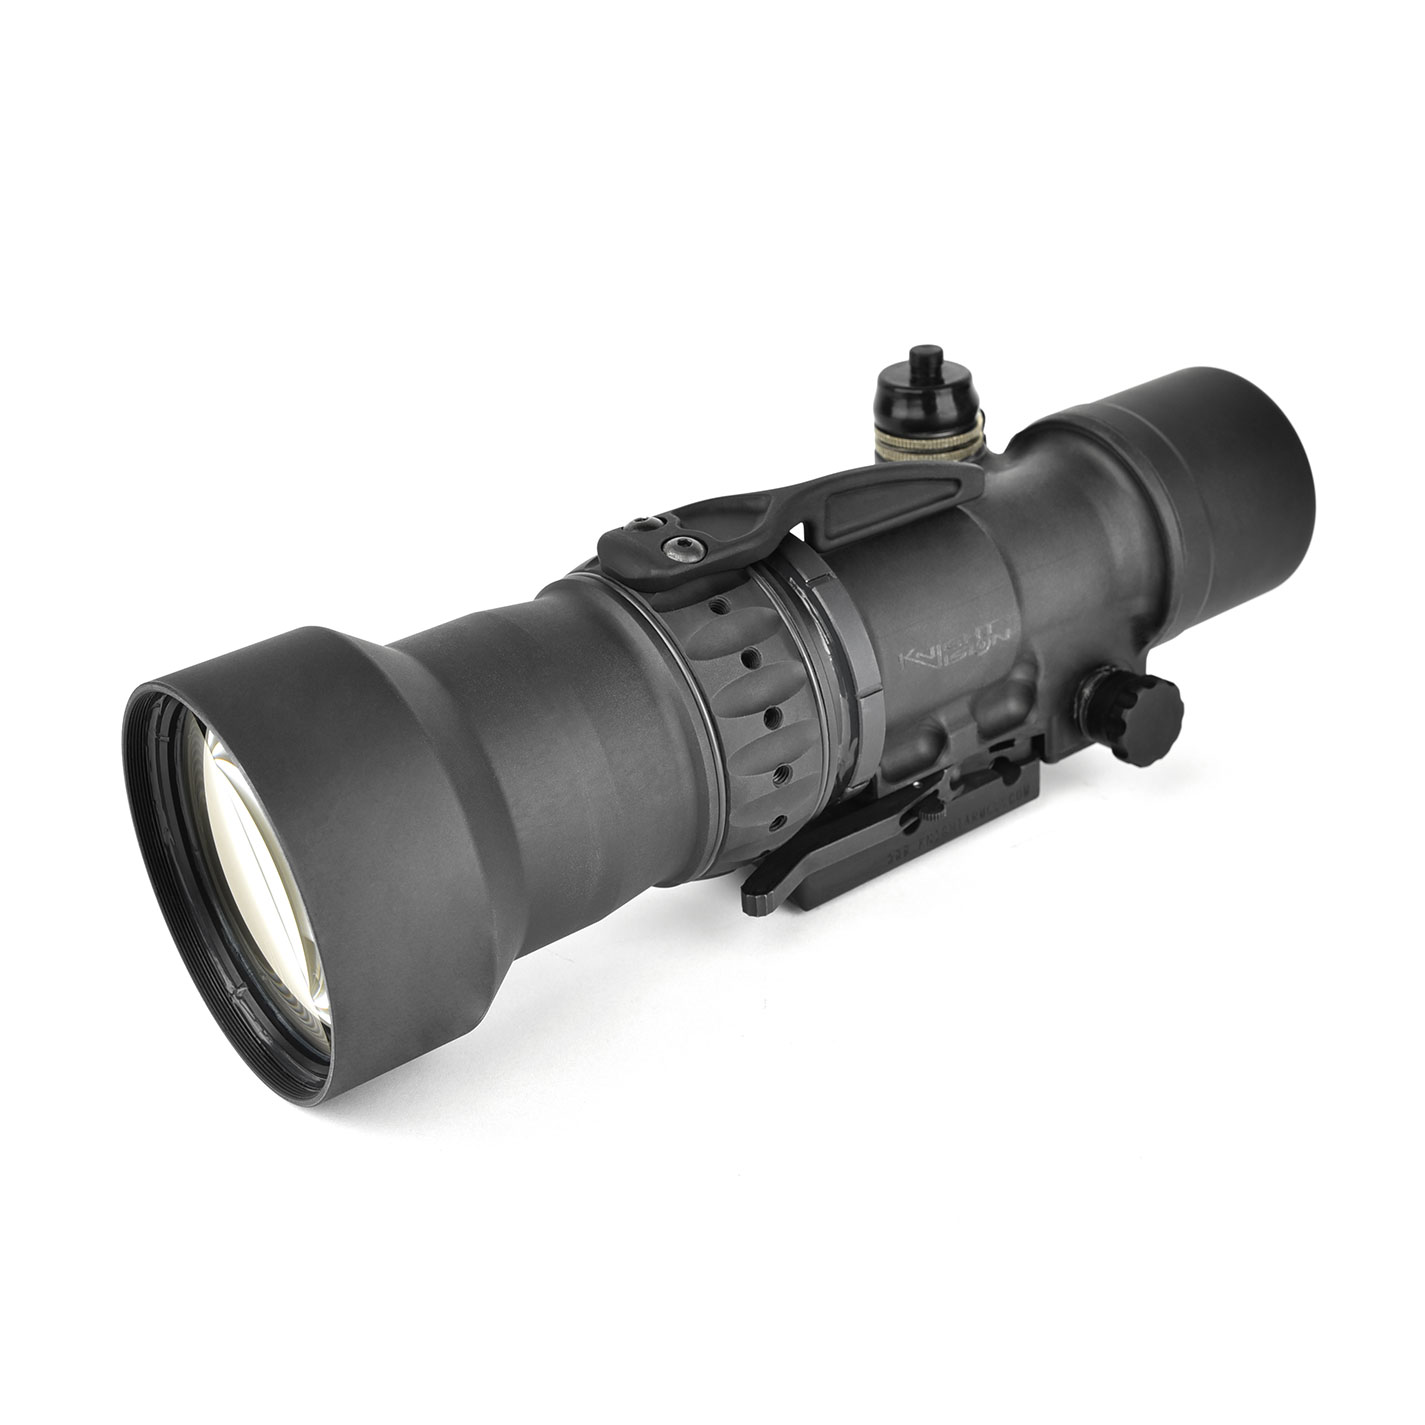 Knight Vision® UNS-LR A2 Night Vision Clip-on Weapon Sight